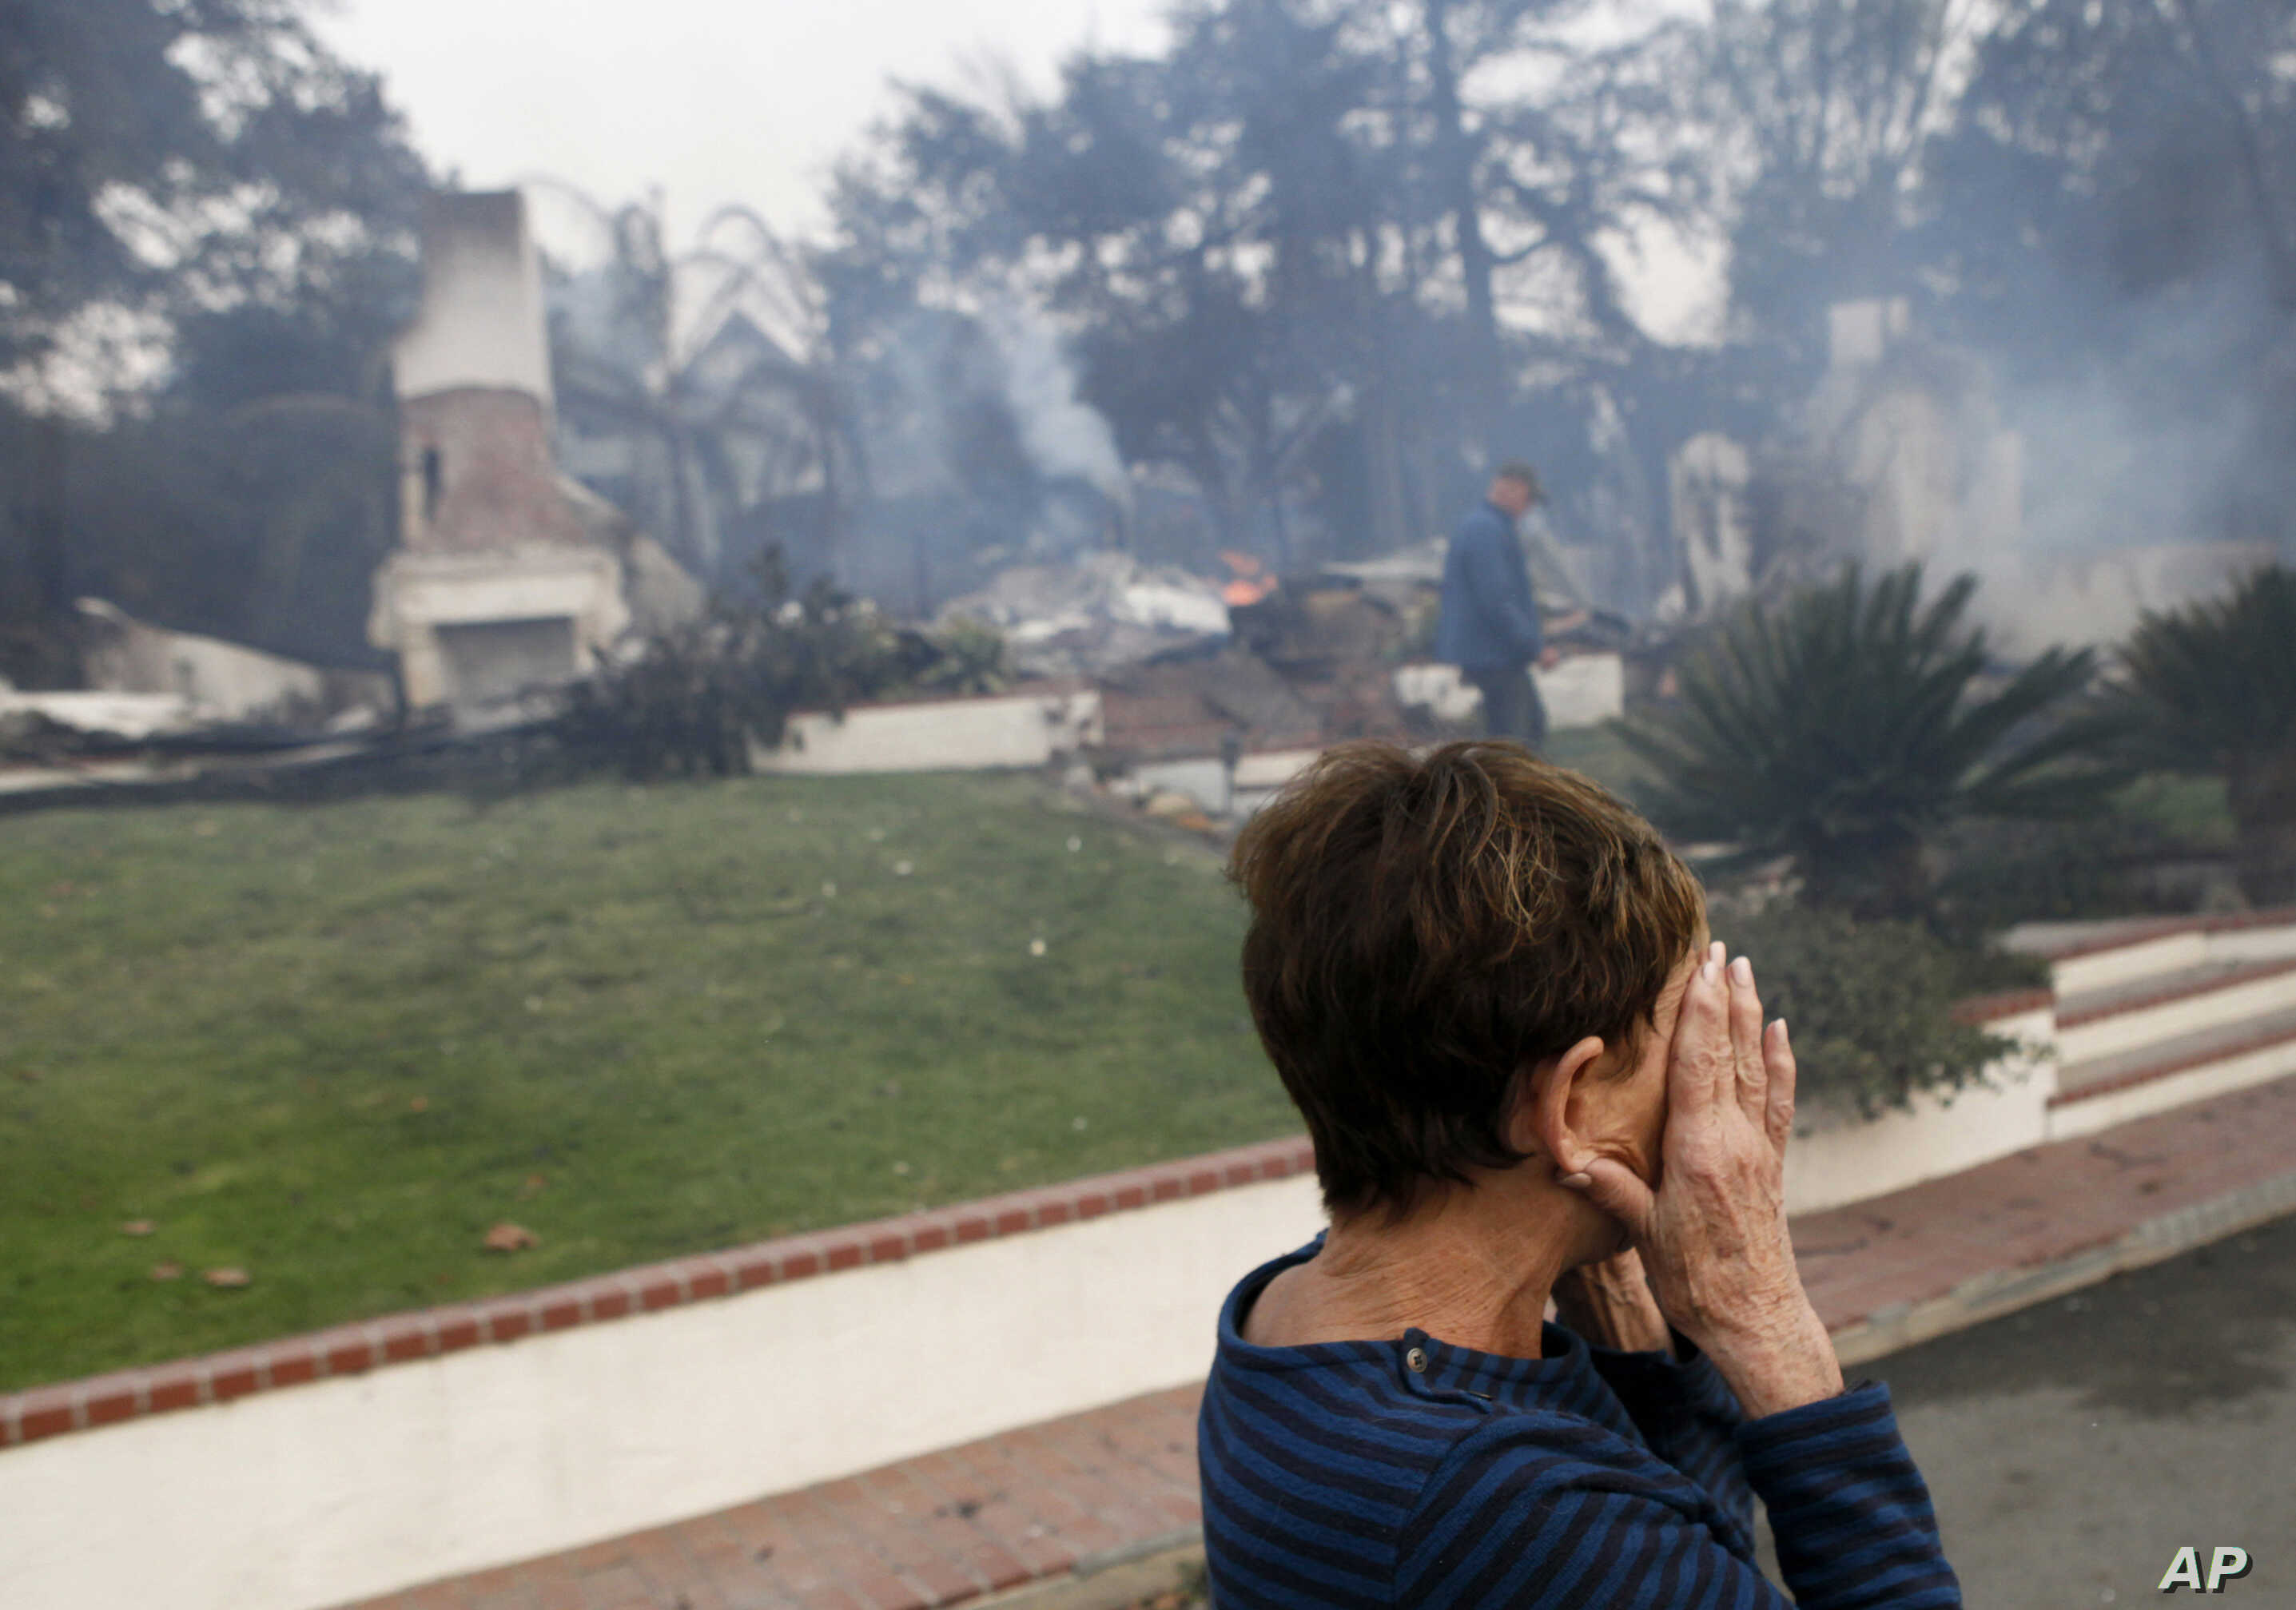 FILE - A woman cries as she covers her face near her destroyed home a wildfire swept through Ventura, California, Dec. 5, 2017.